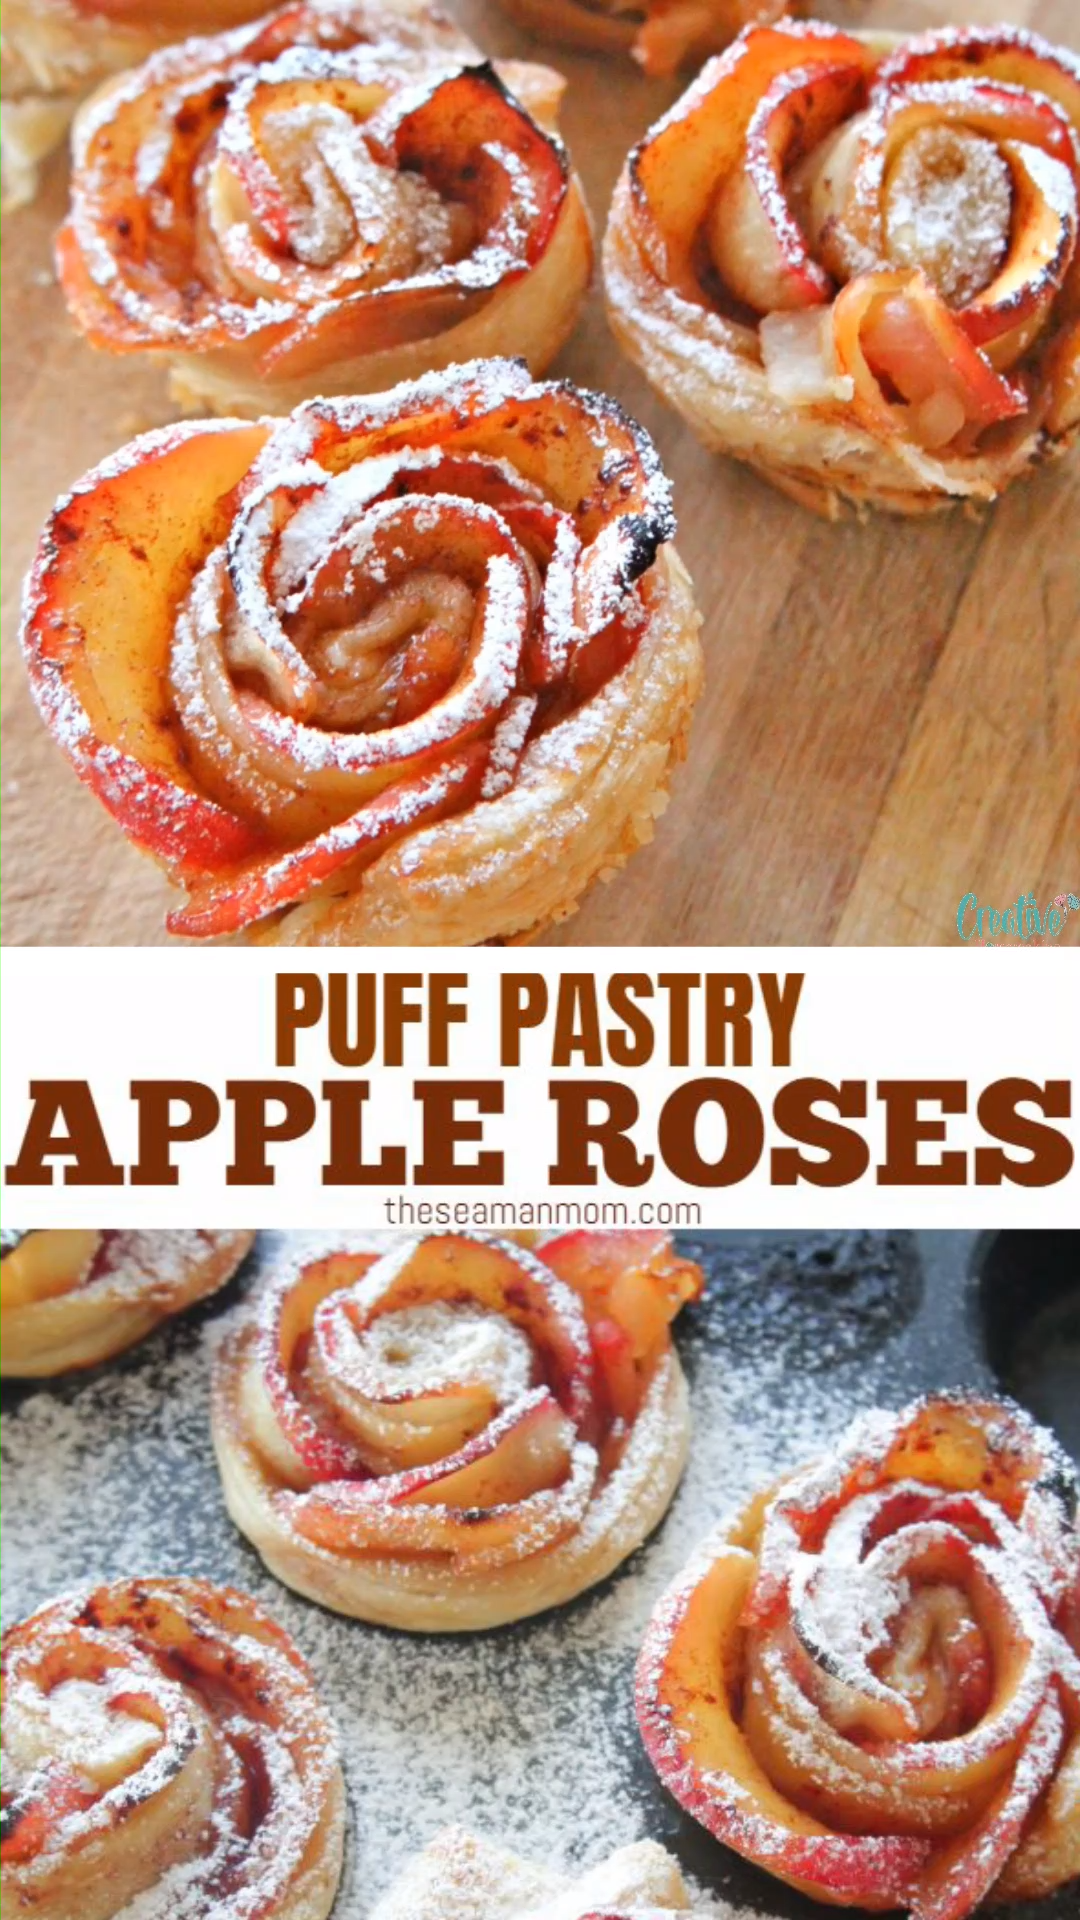 Apple Roses Recipe The Ultimate Fall Party Dessert